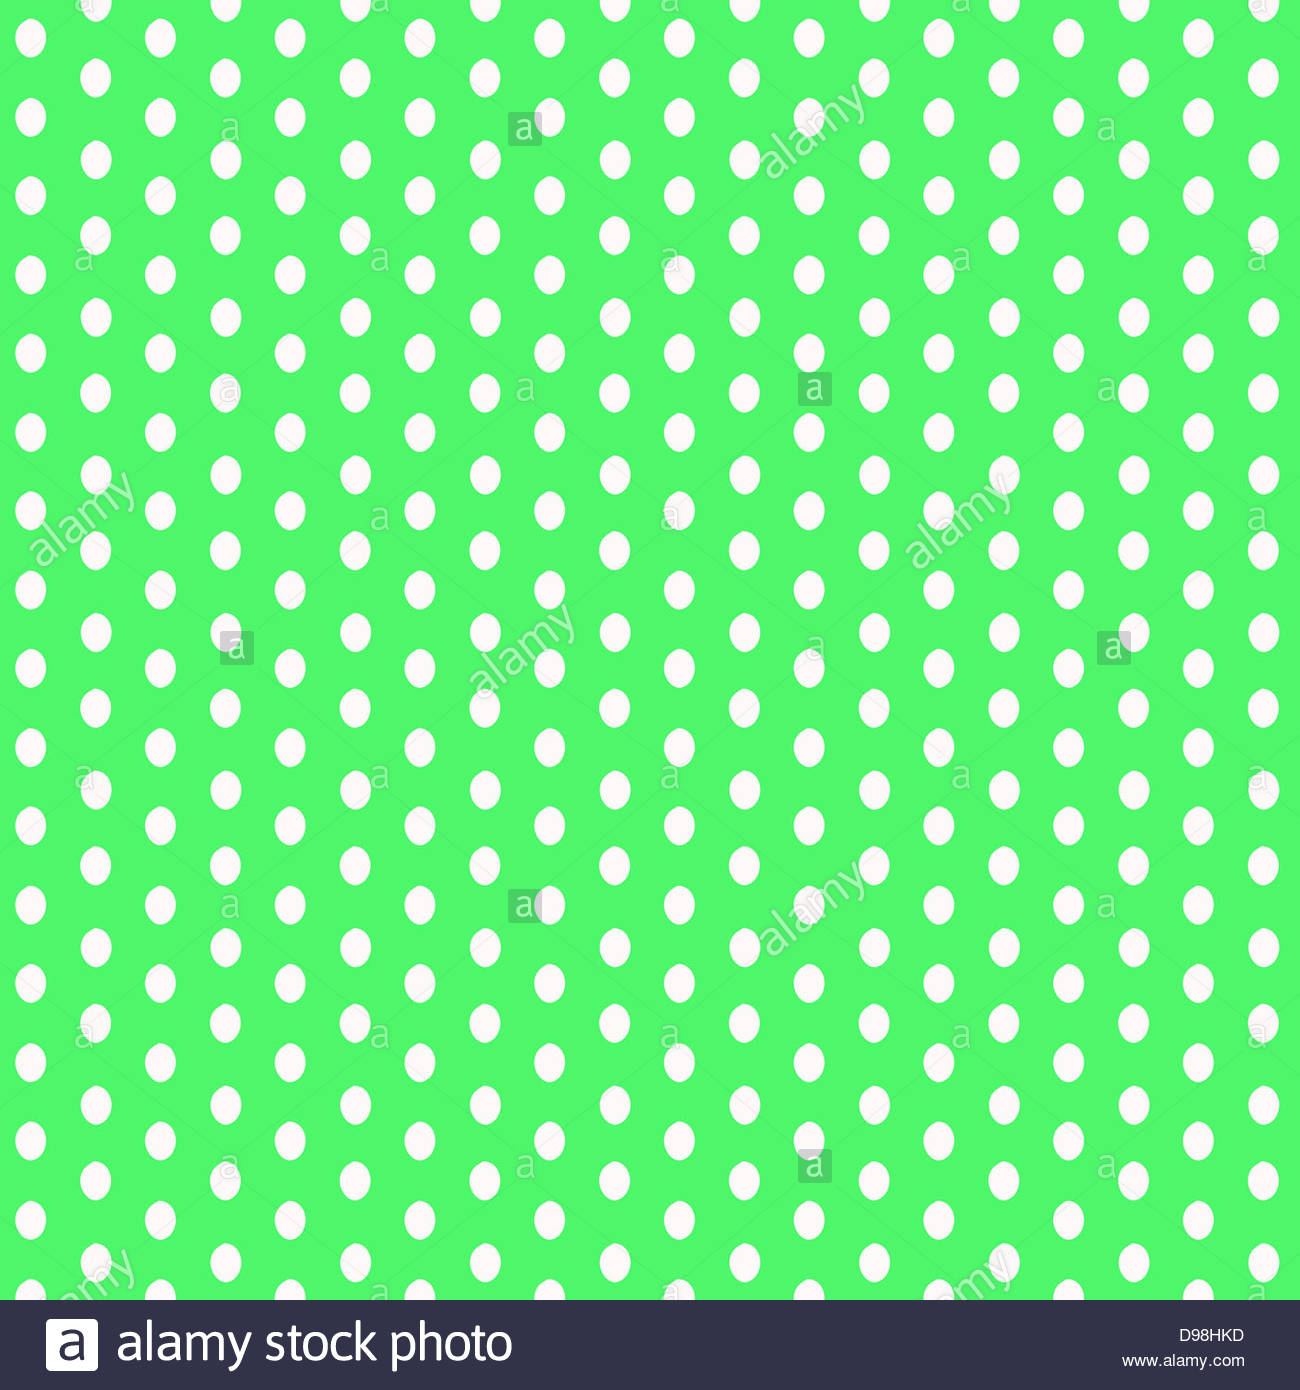 digital composite background white polka dots on a lime green stock